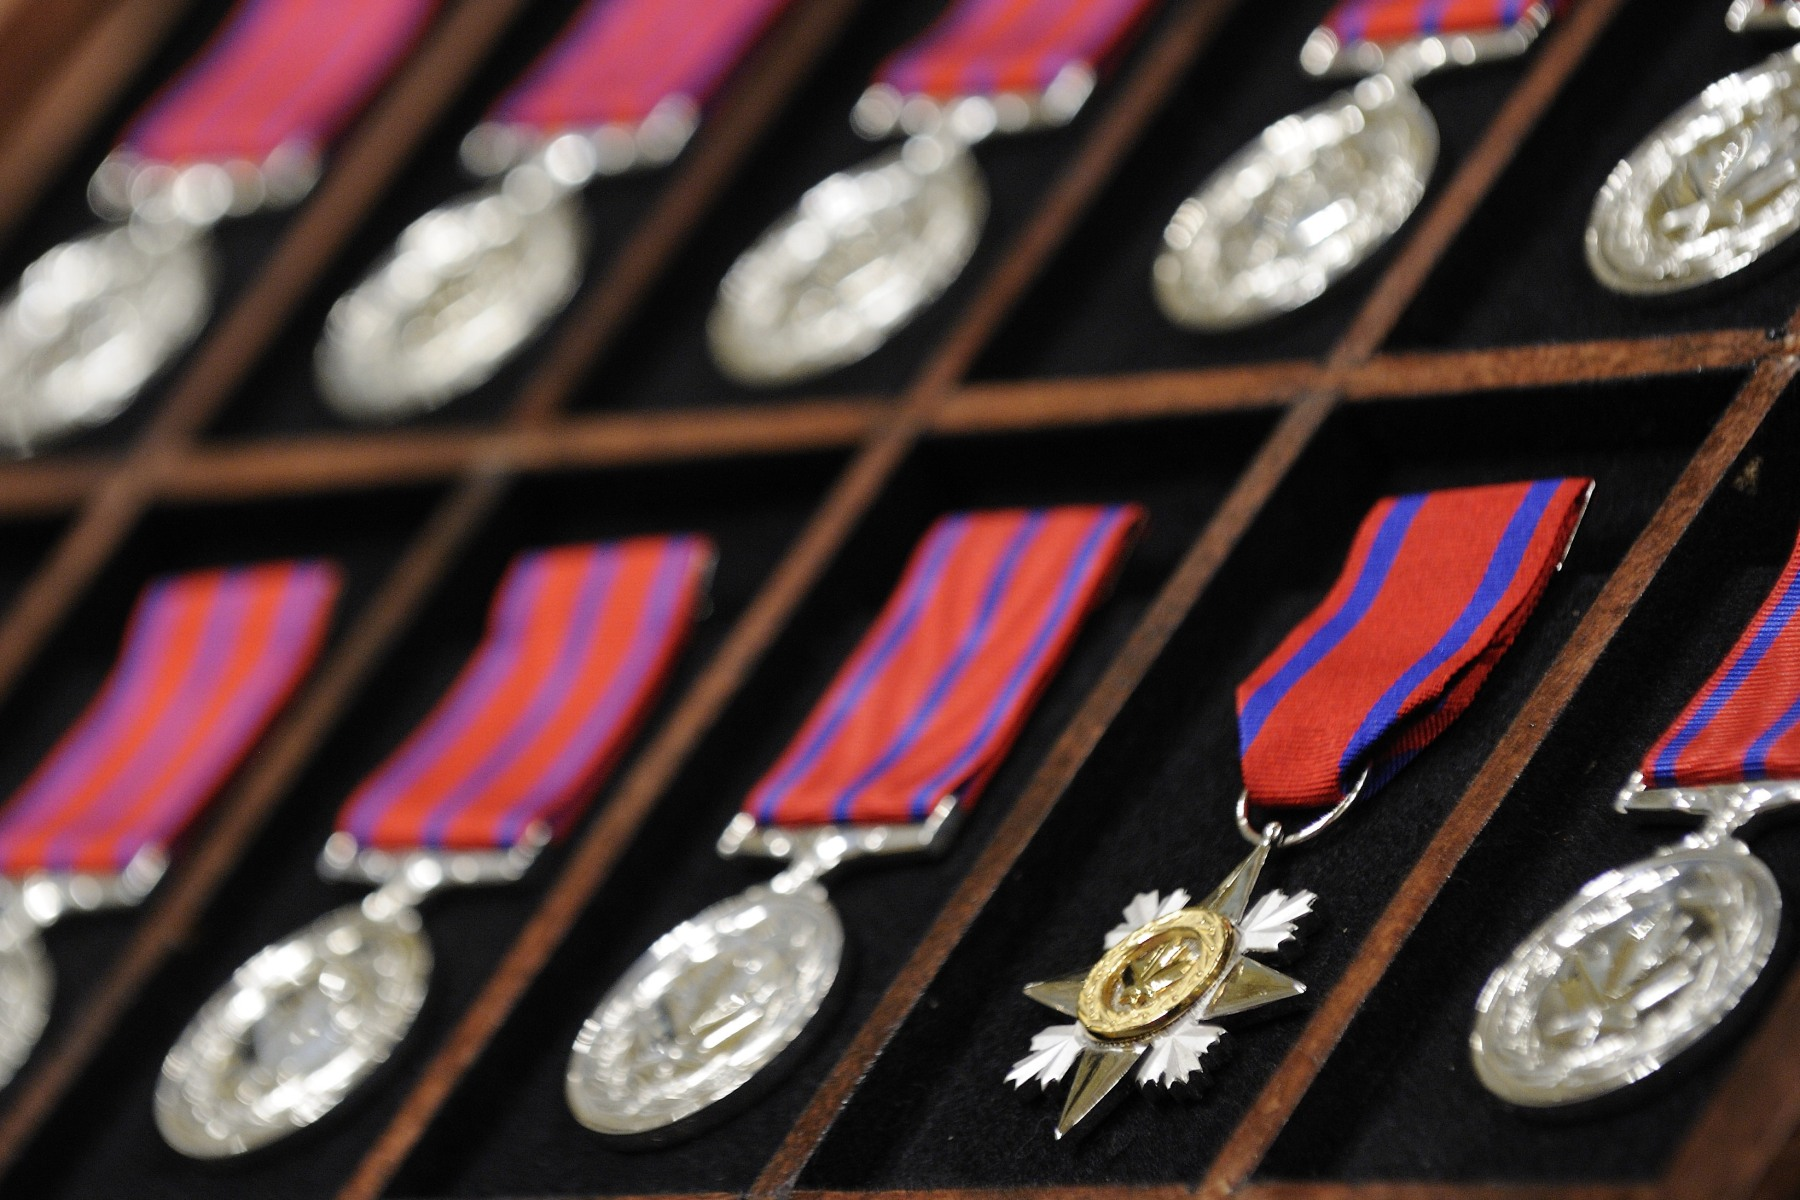 On April 20, 2012, His Excellency presented 2 Stars of Courage and 36 Medals of Bravery at a ceremony at Rideau Hall. The Decorations for Bravery were created in 1972. They recognize people who risk their lives and choose to defy their own instinct of survival to try to save a loved one or a perfect stranger whose life is in immediate danger.